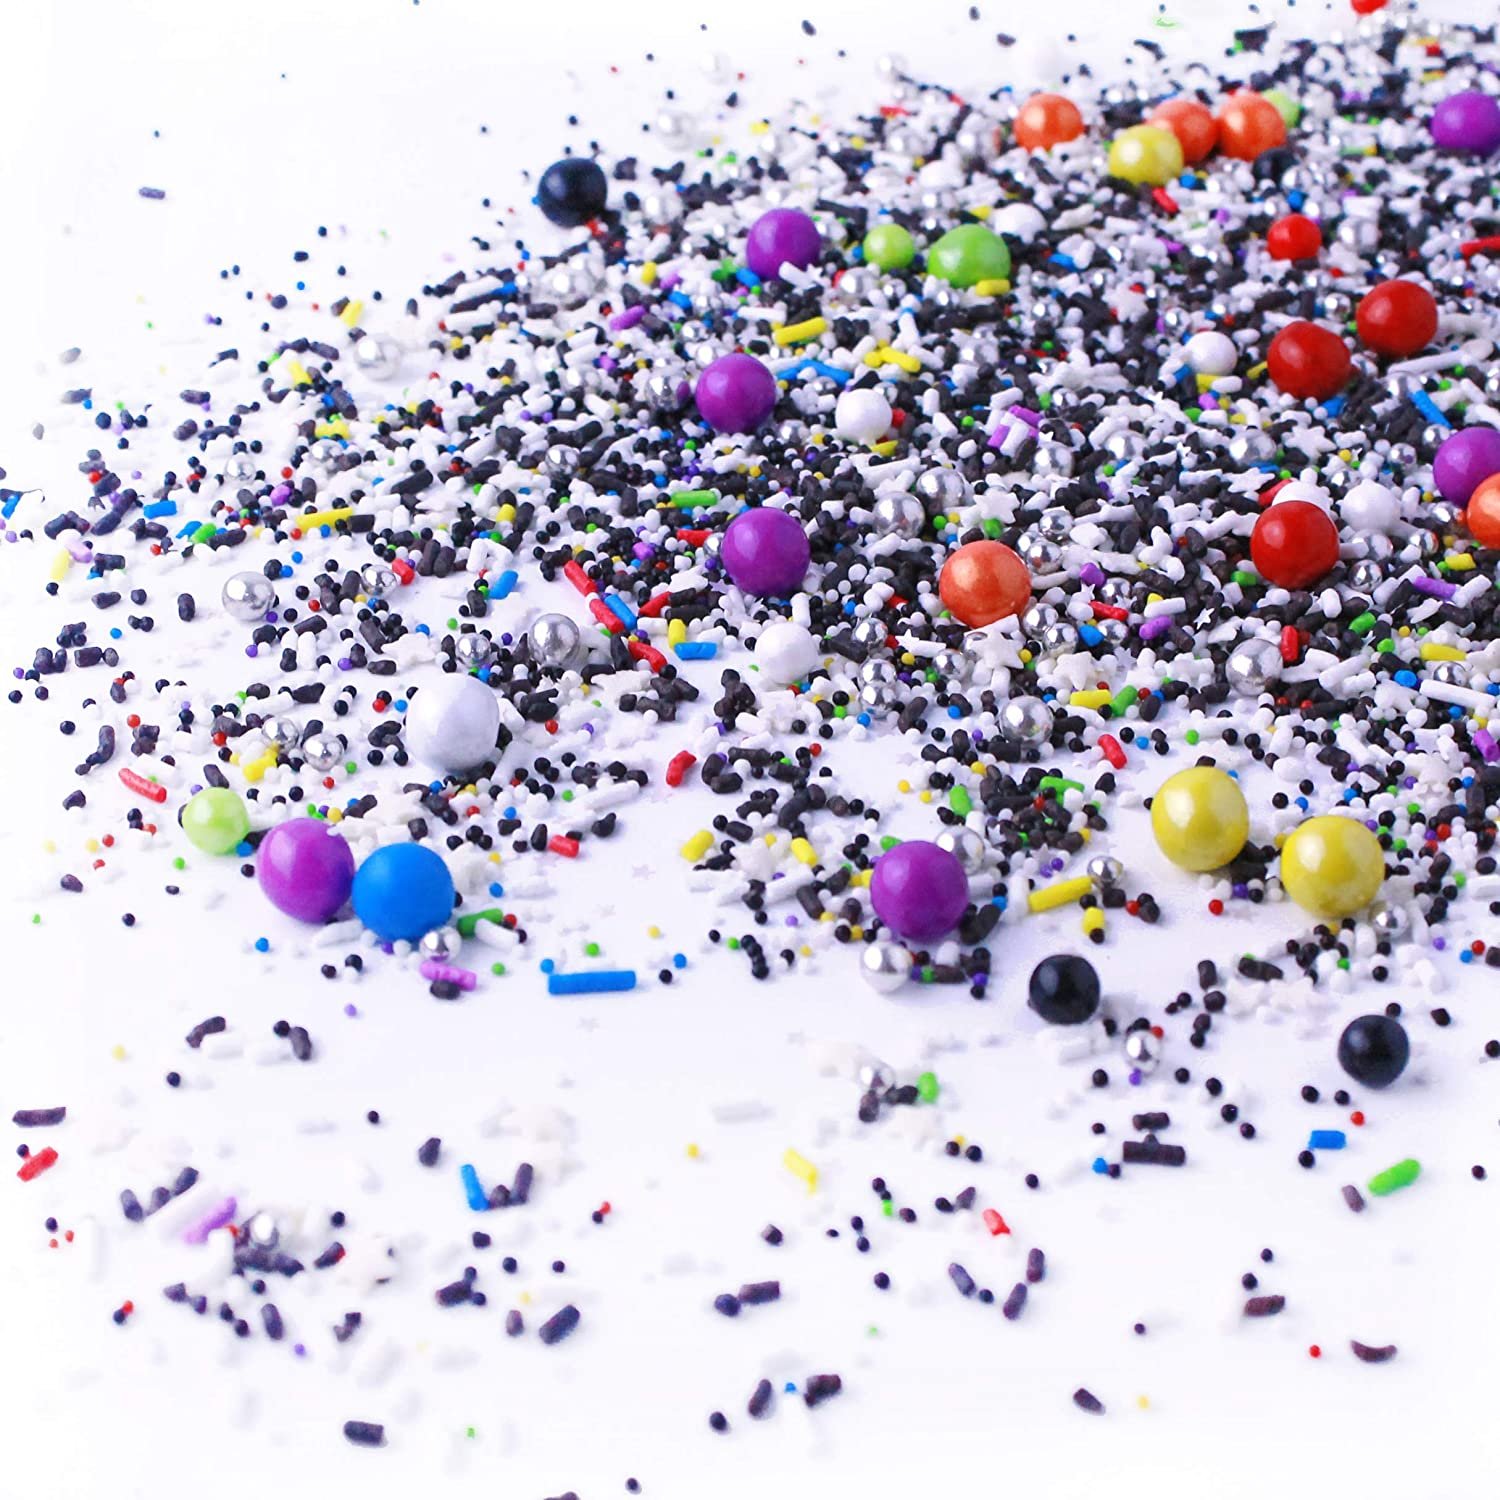 Out Of This World| Blue Green Orange Black White Boy Galaxy Space New Year's Colorful Candy Sprinkles Mix For Baking Edible Cake Decorations Cupcake Toppers Cookie Decorating Ice Cream Toppings, 4OZ